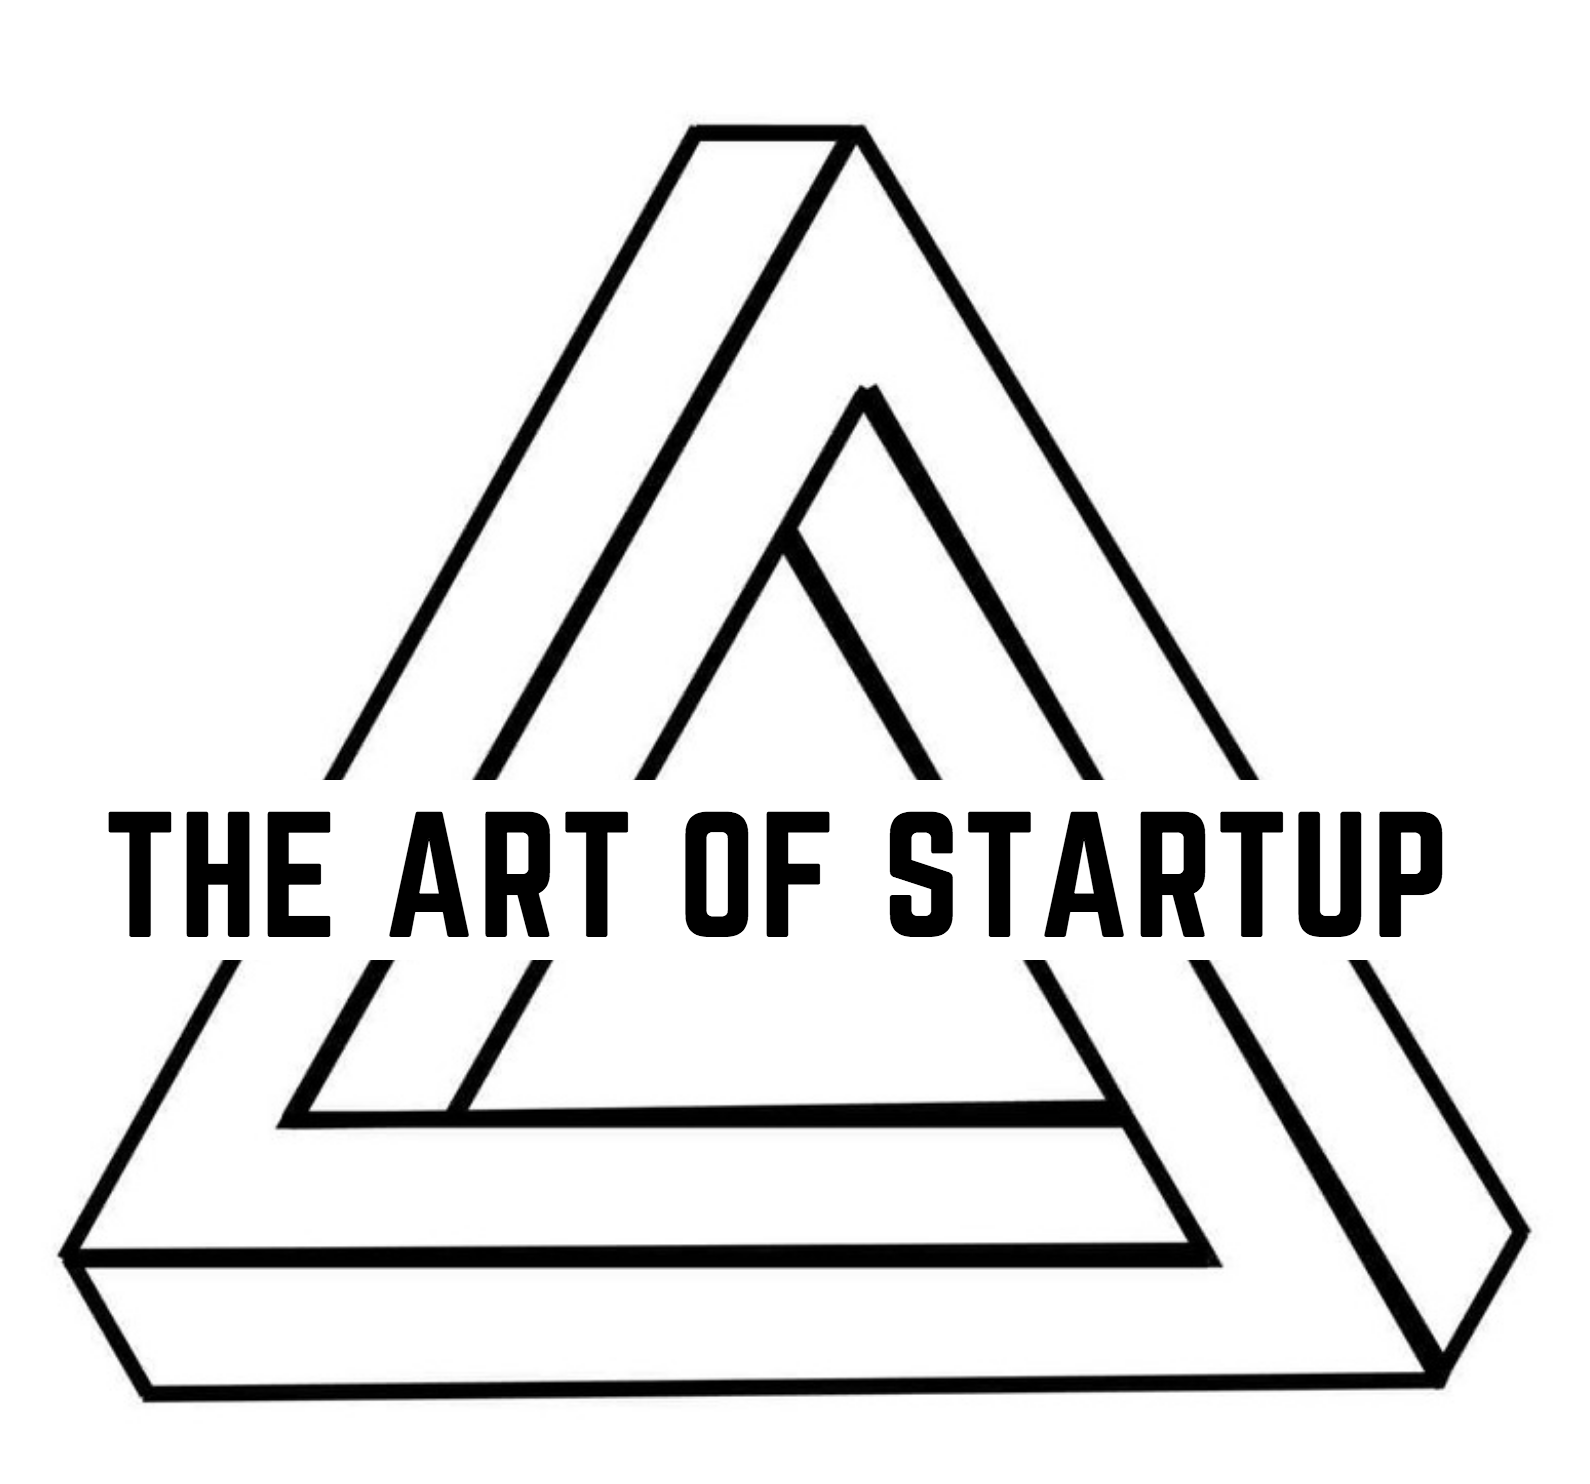 The art of startup